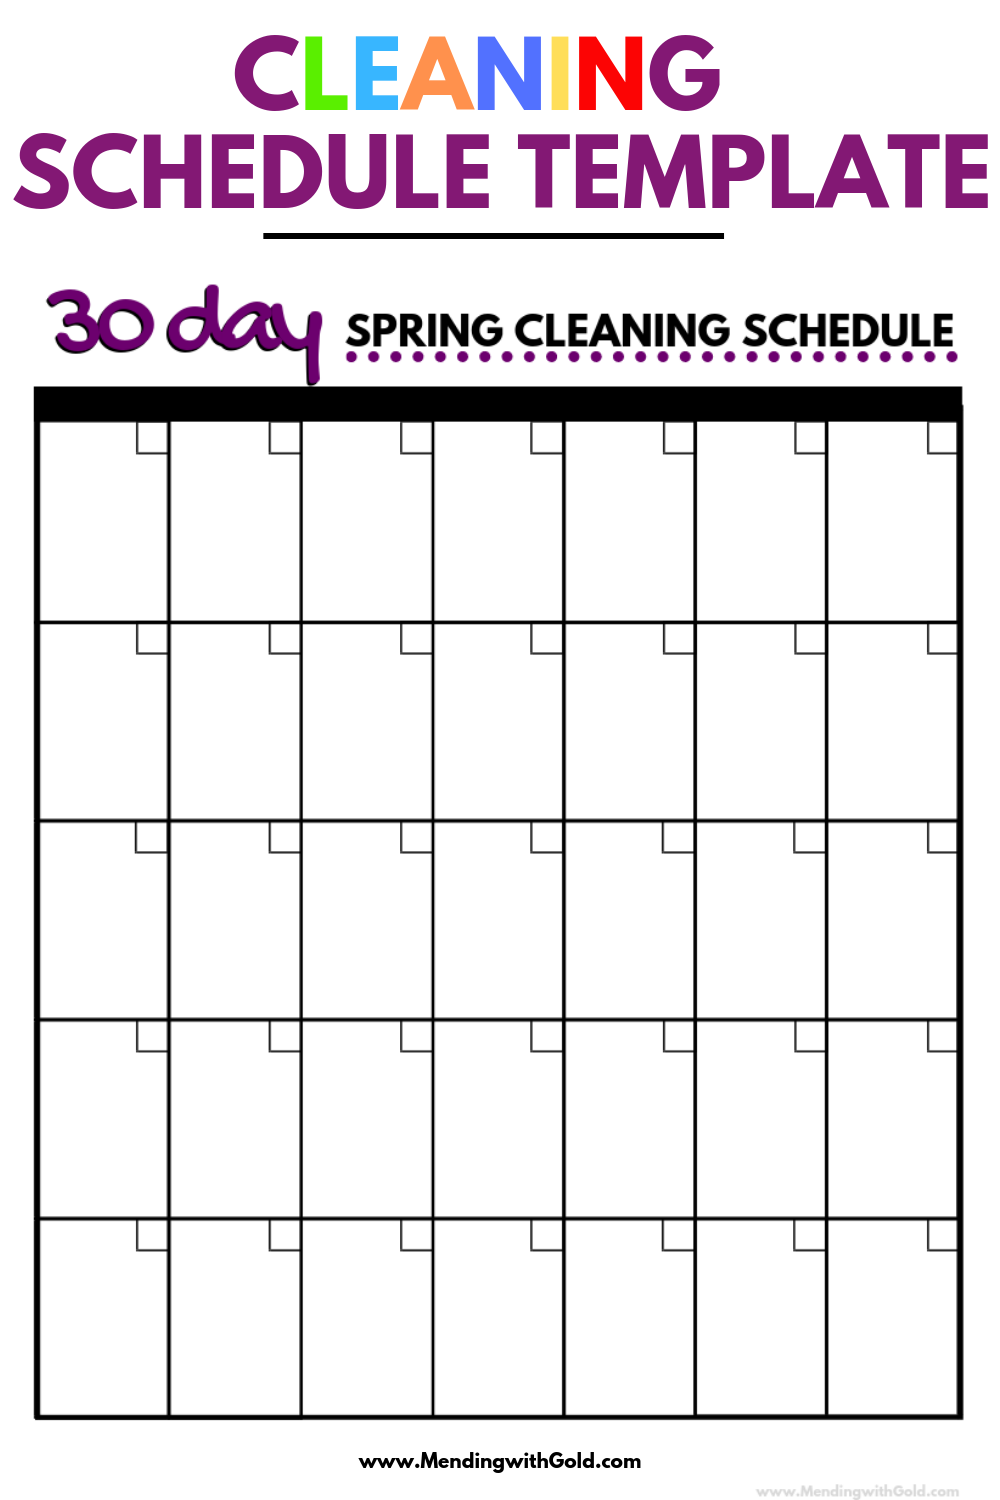 spring cleaning schedule